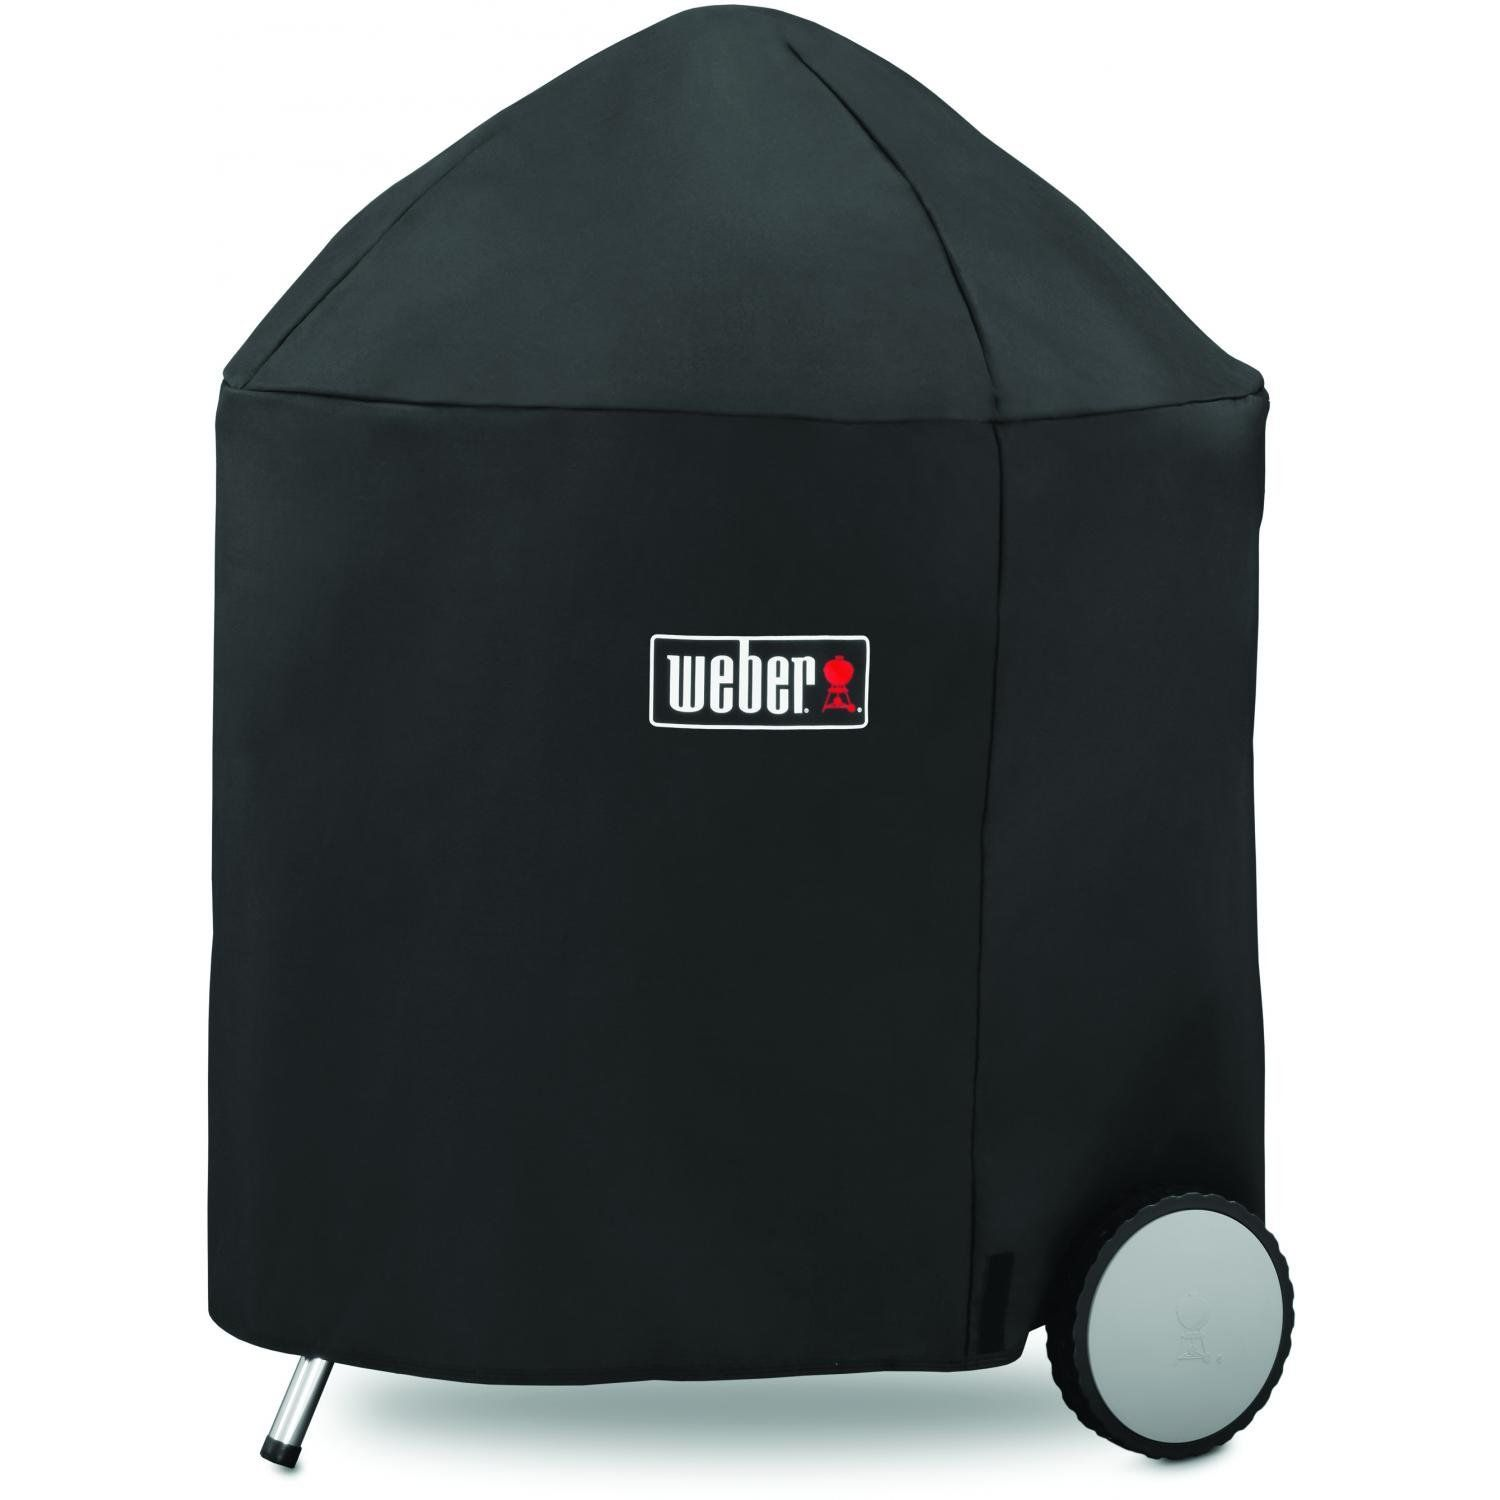 Weber 7153 Grill Cover with Storage Bag for Weber 26.75